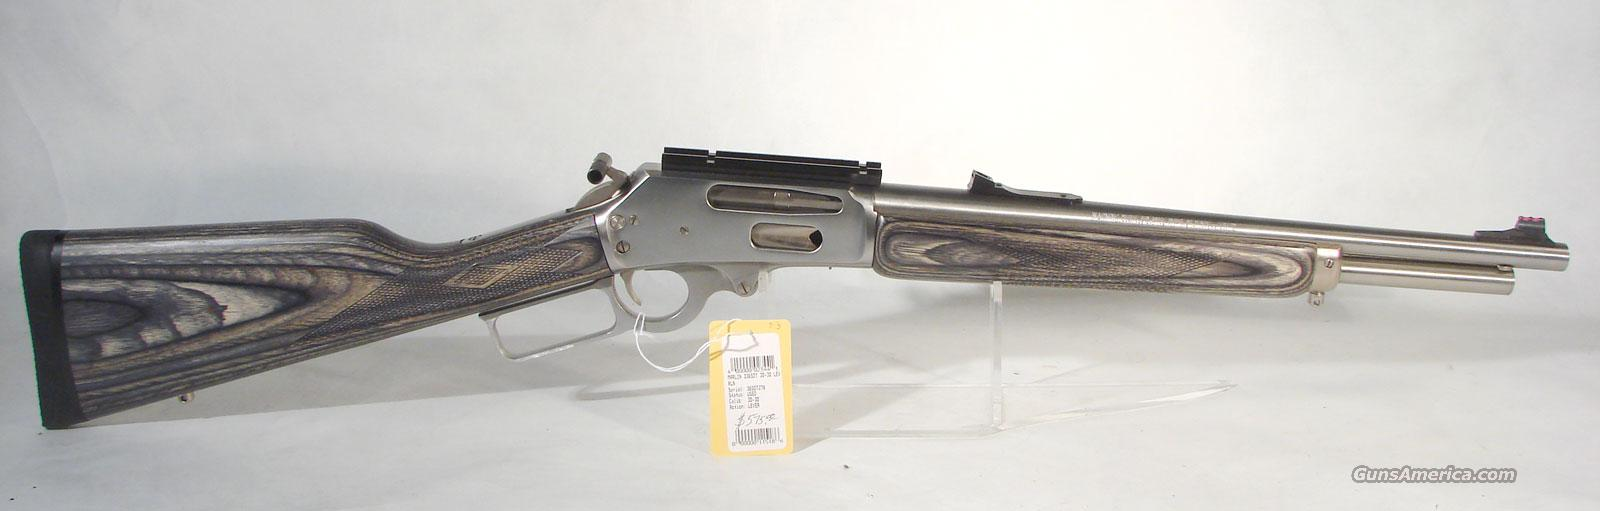 Marlin 336SDT  30/30 Grey. Used as new  Guns > Rifles > Marlin Rifles > Modern > Lever Action